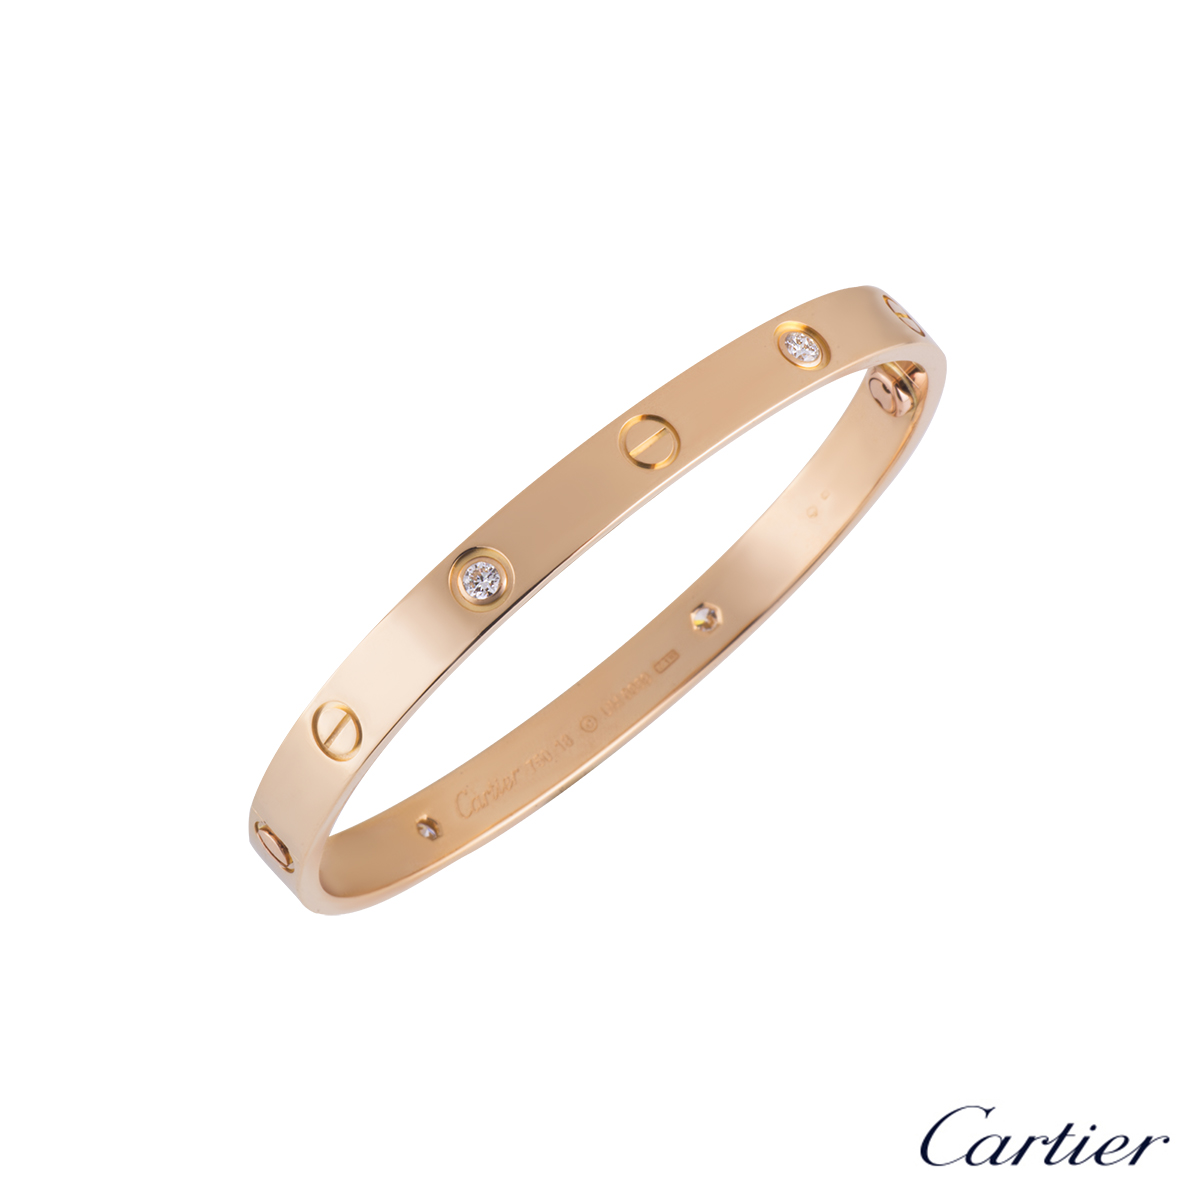 Cartier Love Bracelet Half Diamond Rose Gold Size 18 B6036018